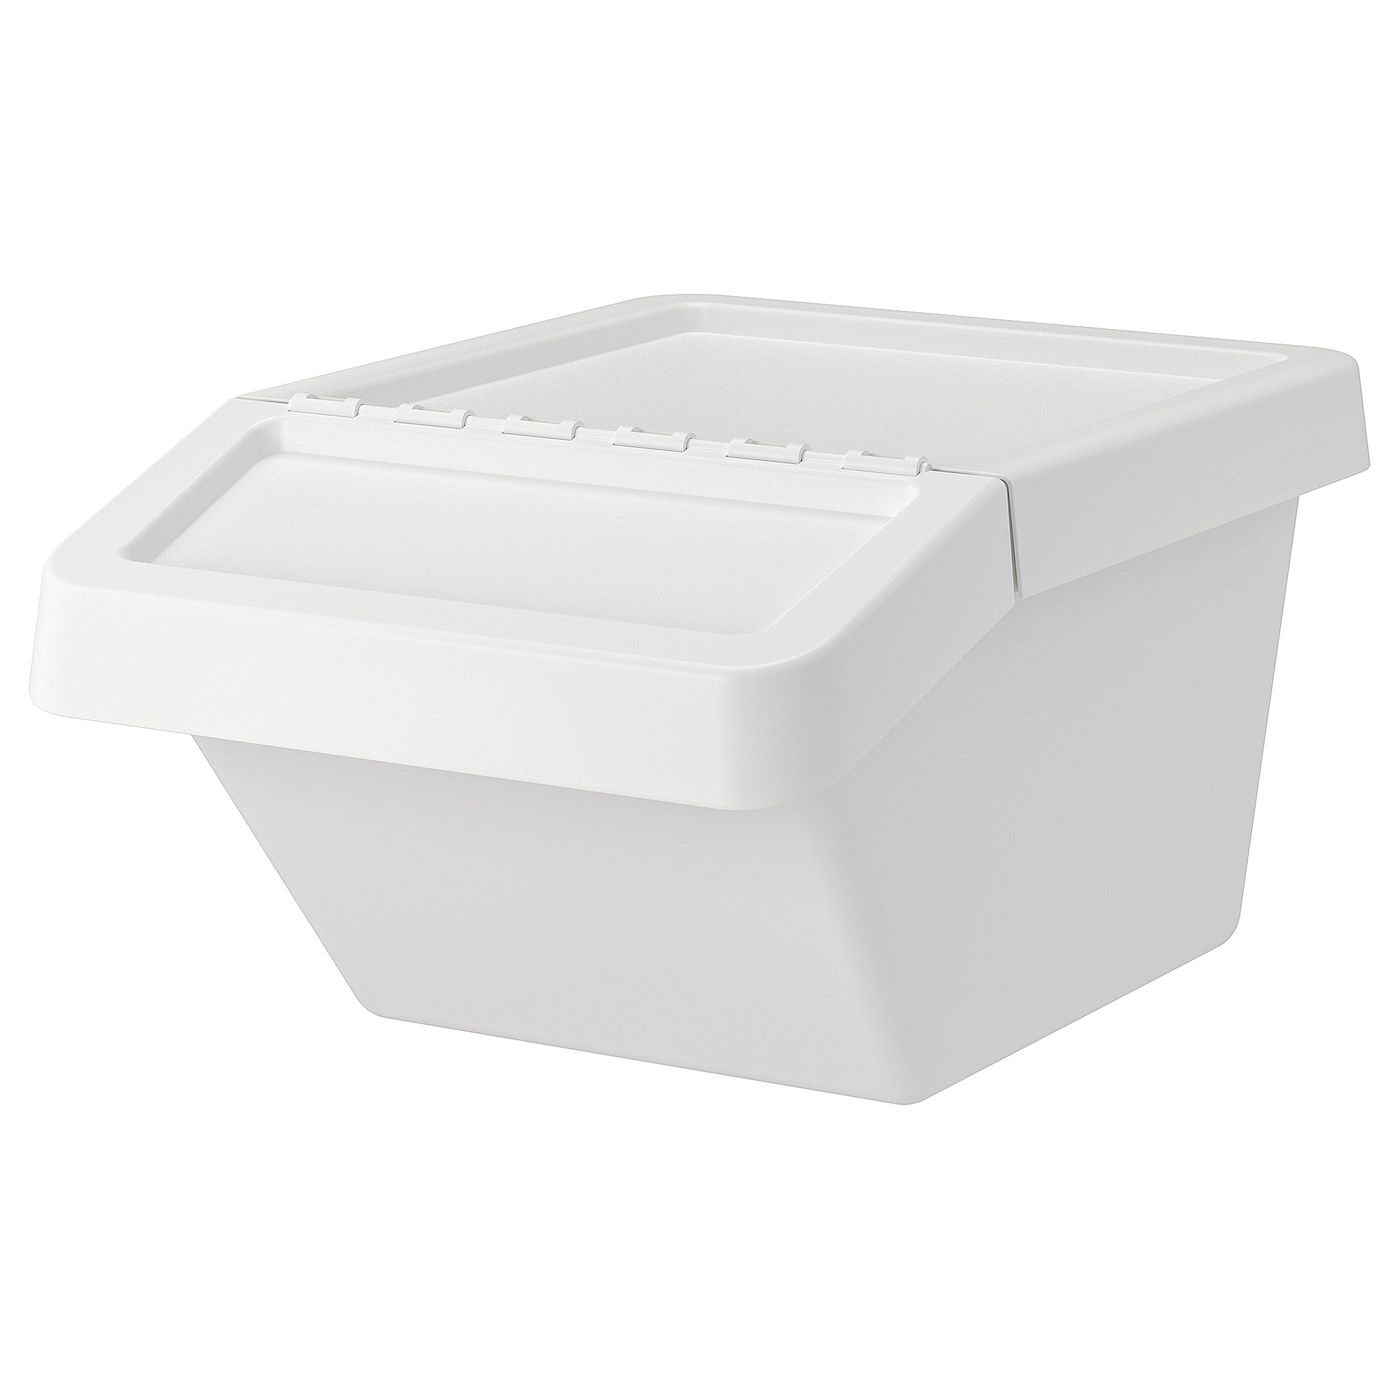 Sortera Recycling Bin With Lid White 10 Gallon Recycling Bins Storage Bins Recycling